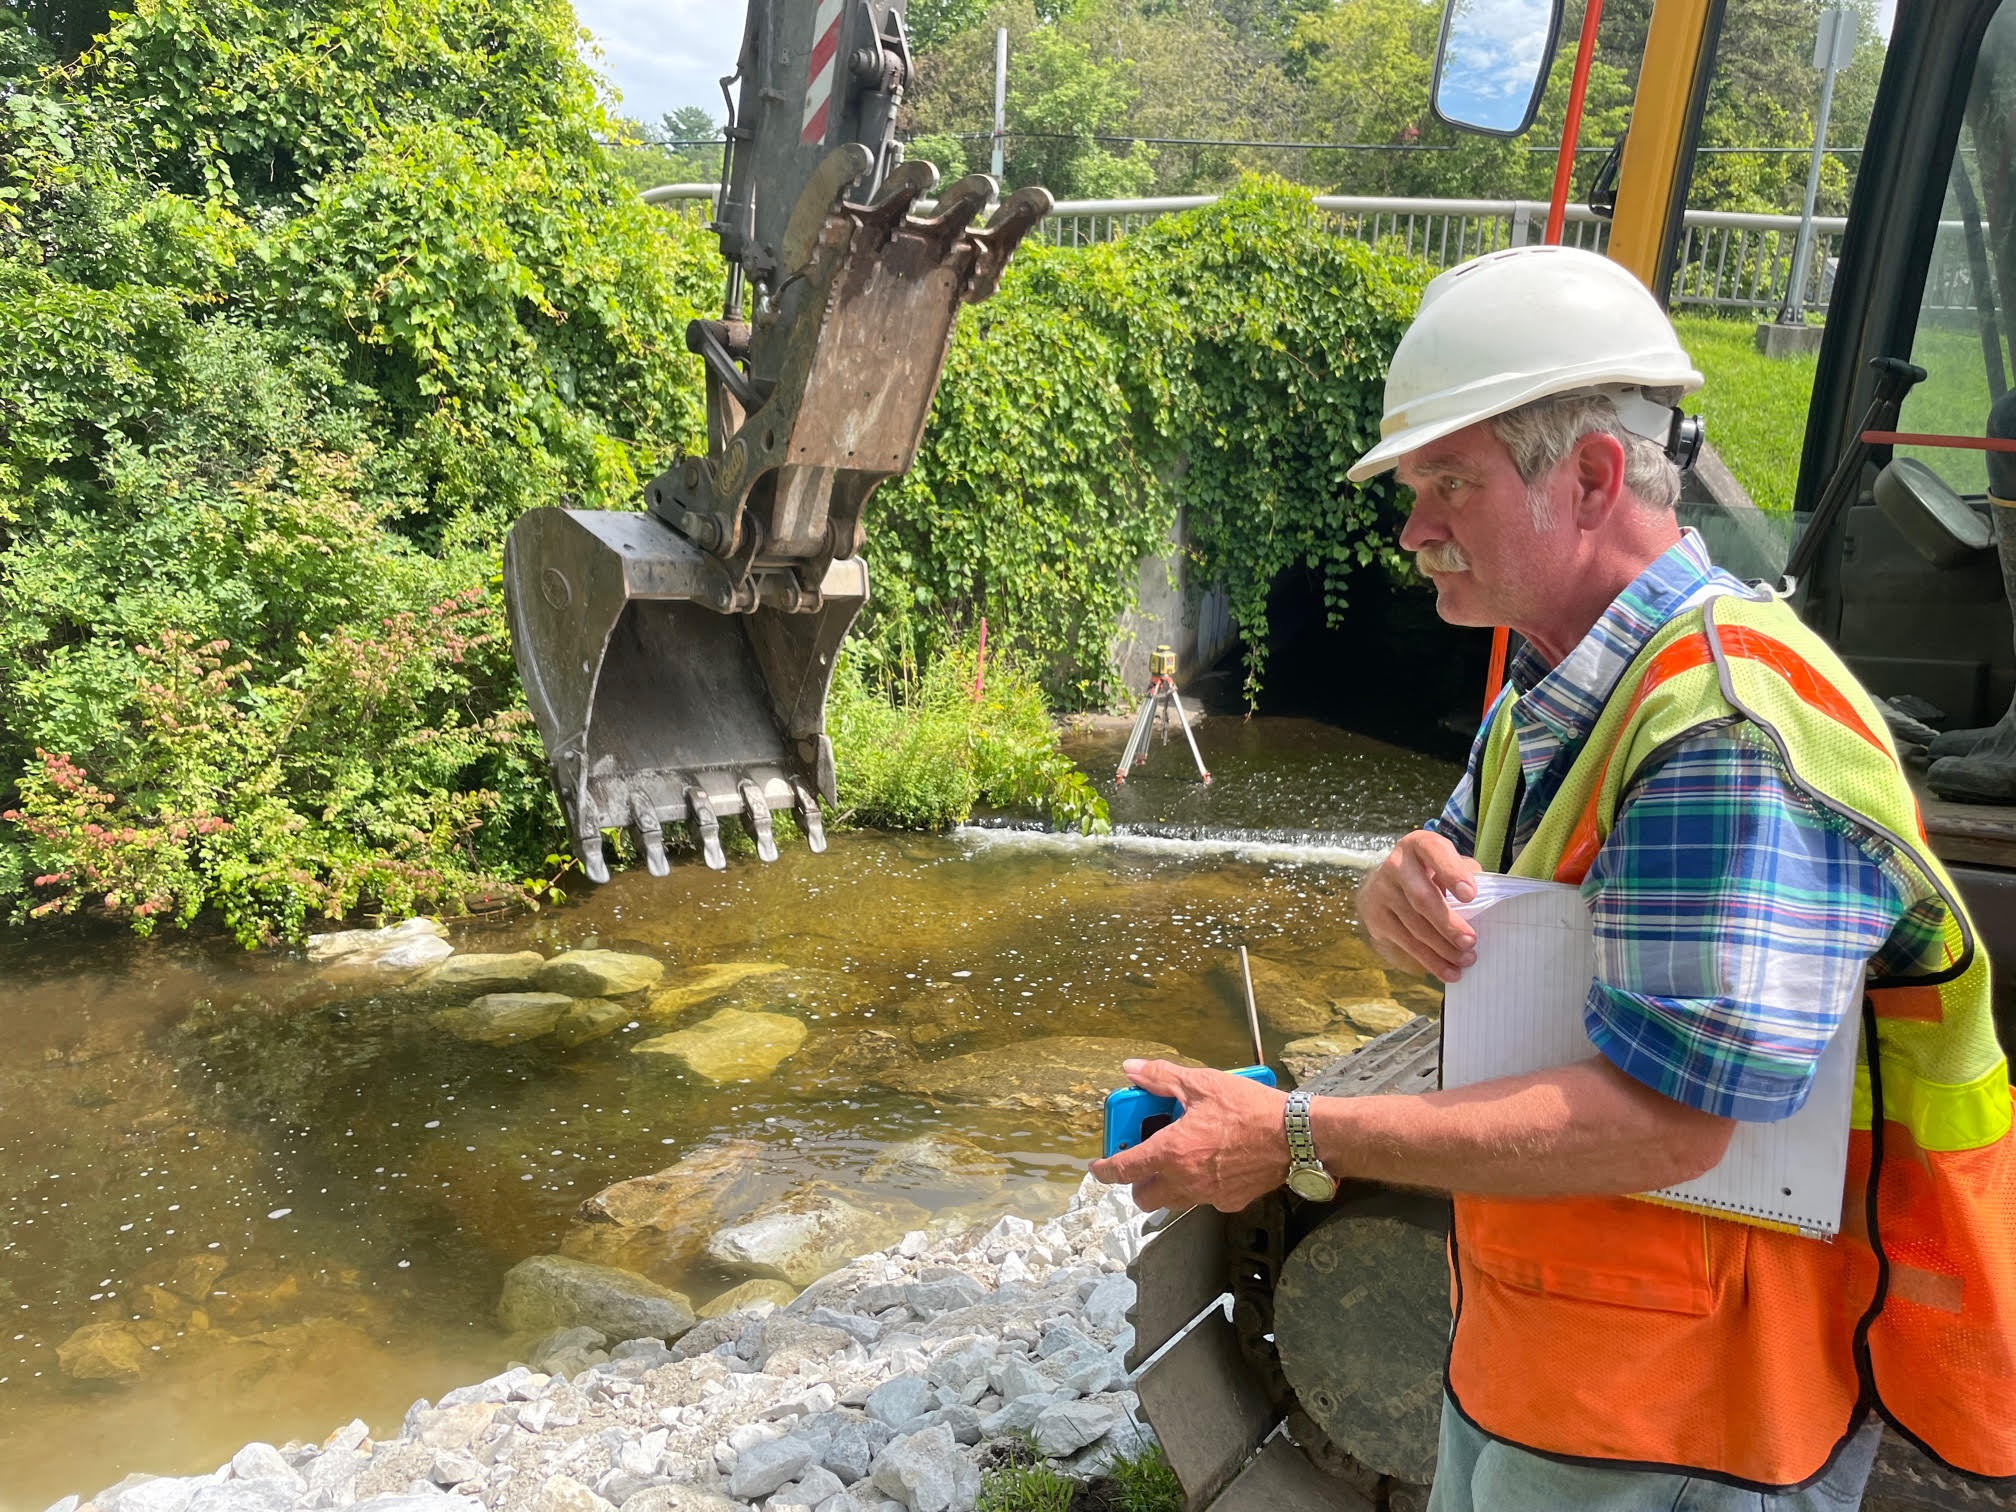 Man oversees cleanup of Dunklee Pond Dam site after dam removal